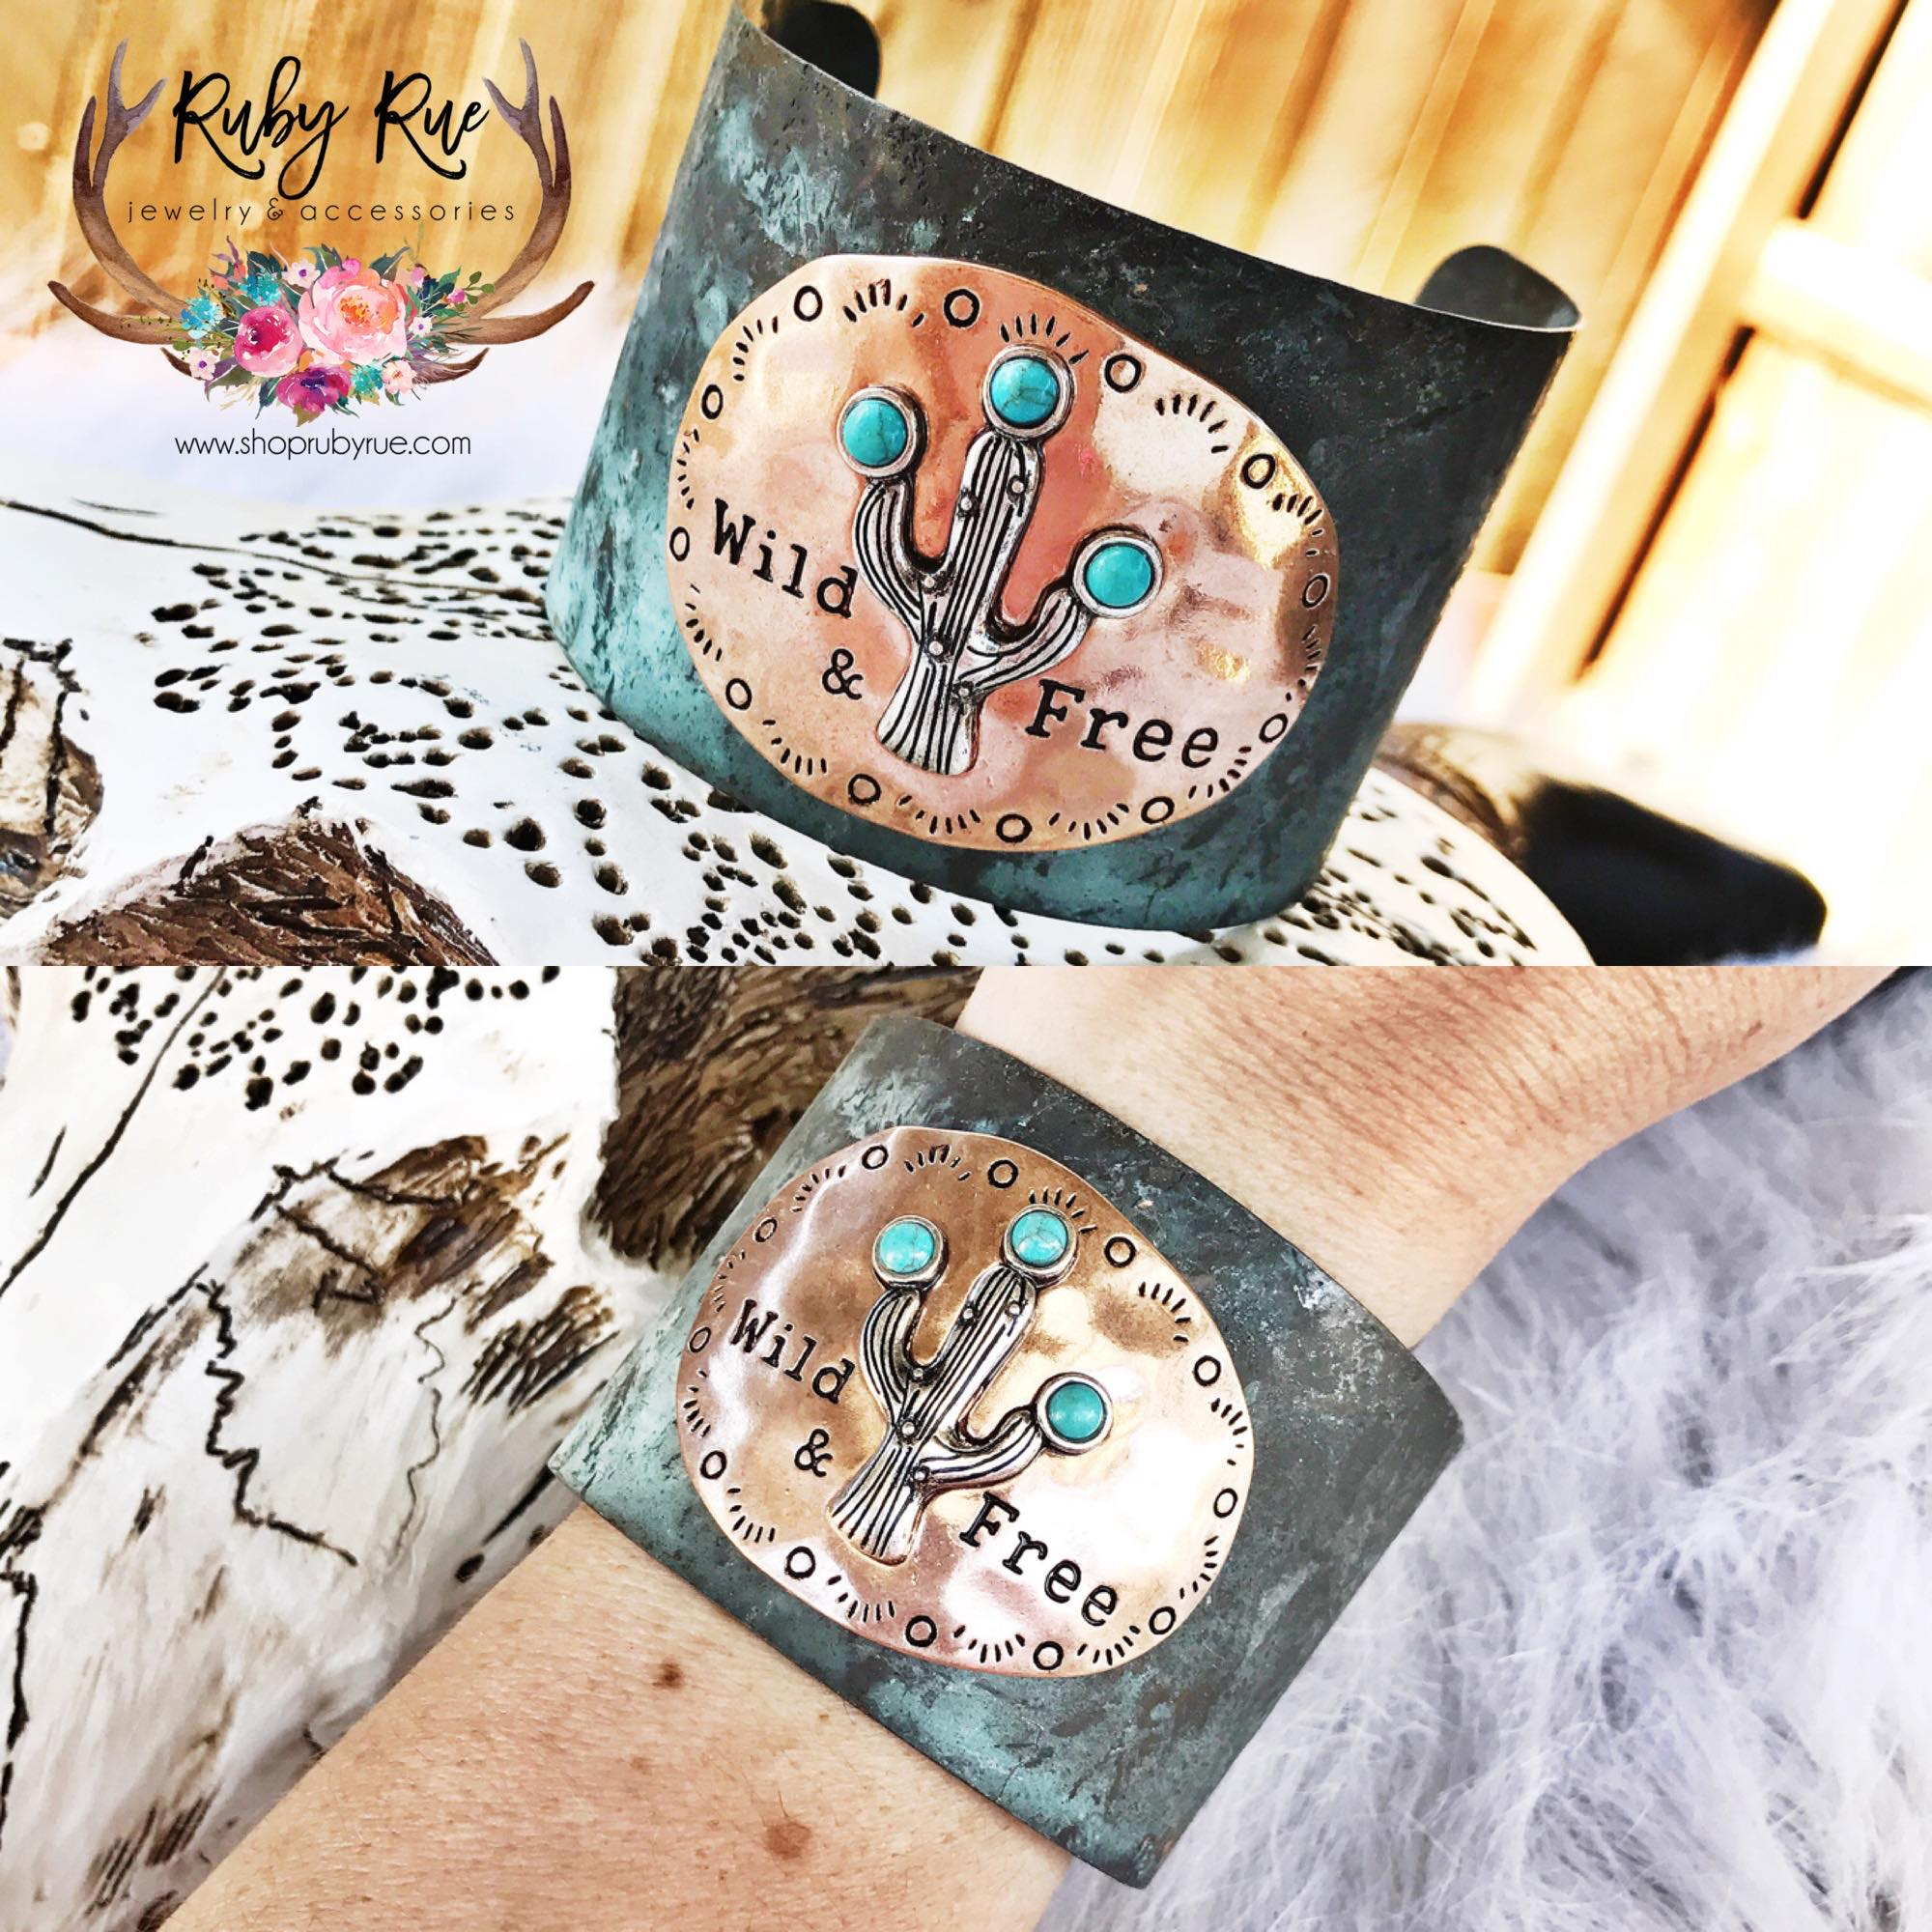 Wild & Free Cactus Cuff - Ruby Rue Jewelry & Accessories